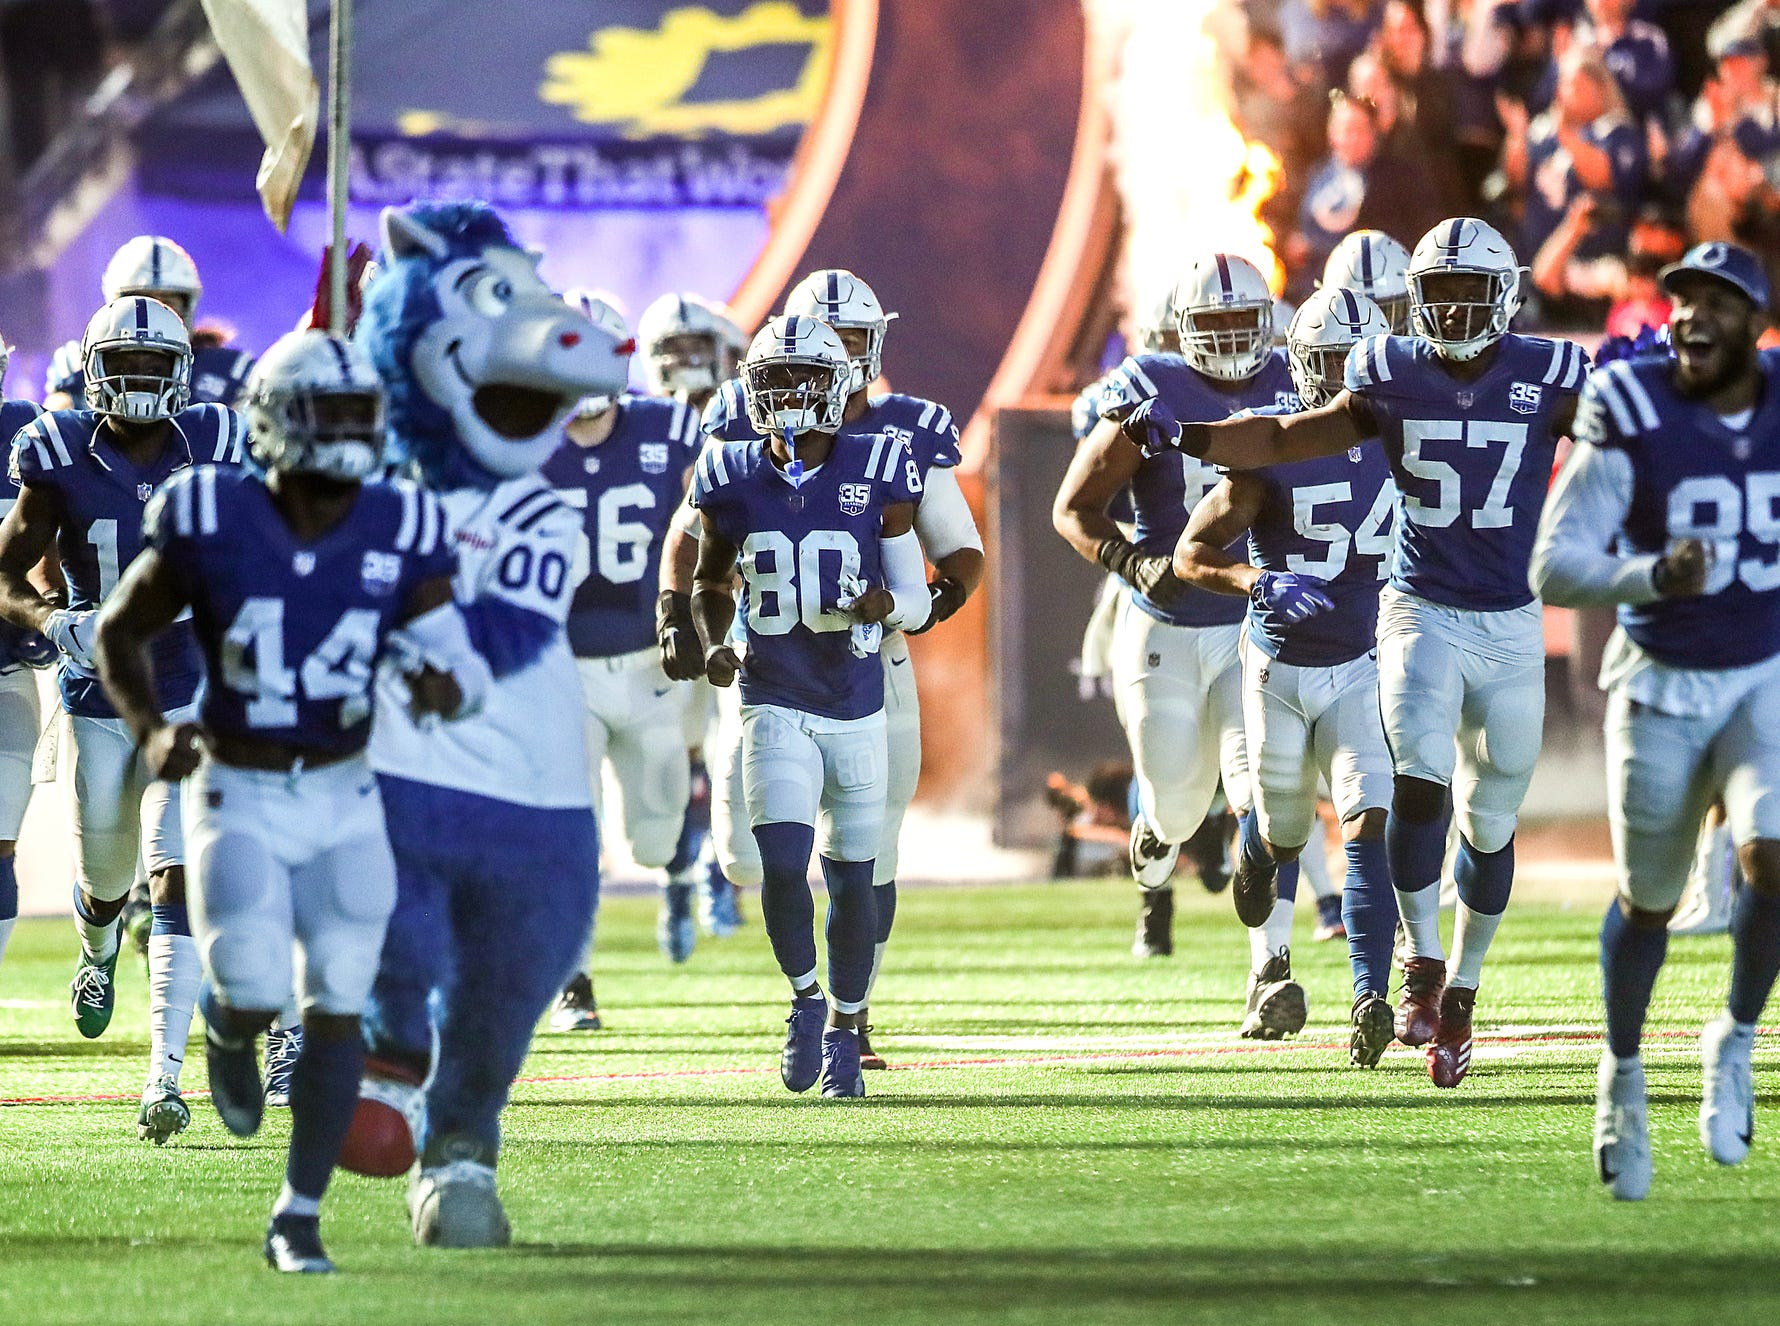 The Indianapolis Colts take the field to face the Dallas Cowboys in NFL week 15 at Lucas Oil Stadium in Indianapolis, Sunday, Dec. 16, 2018. The Colts won, 23-0.